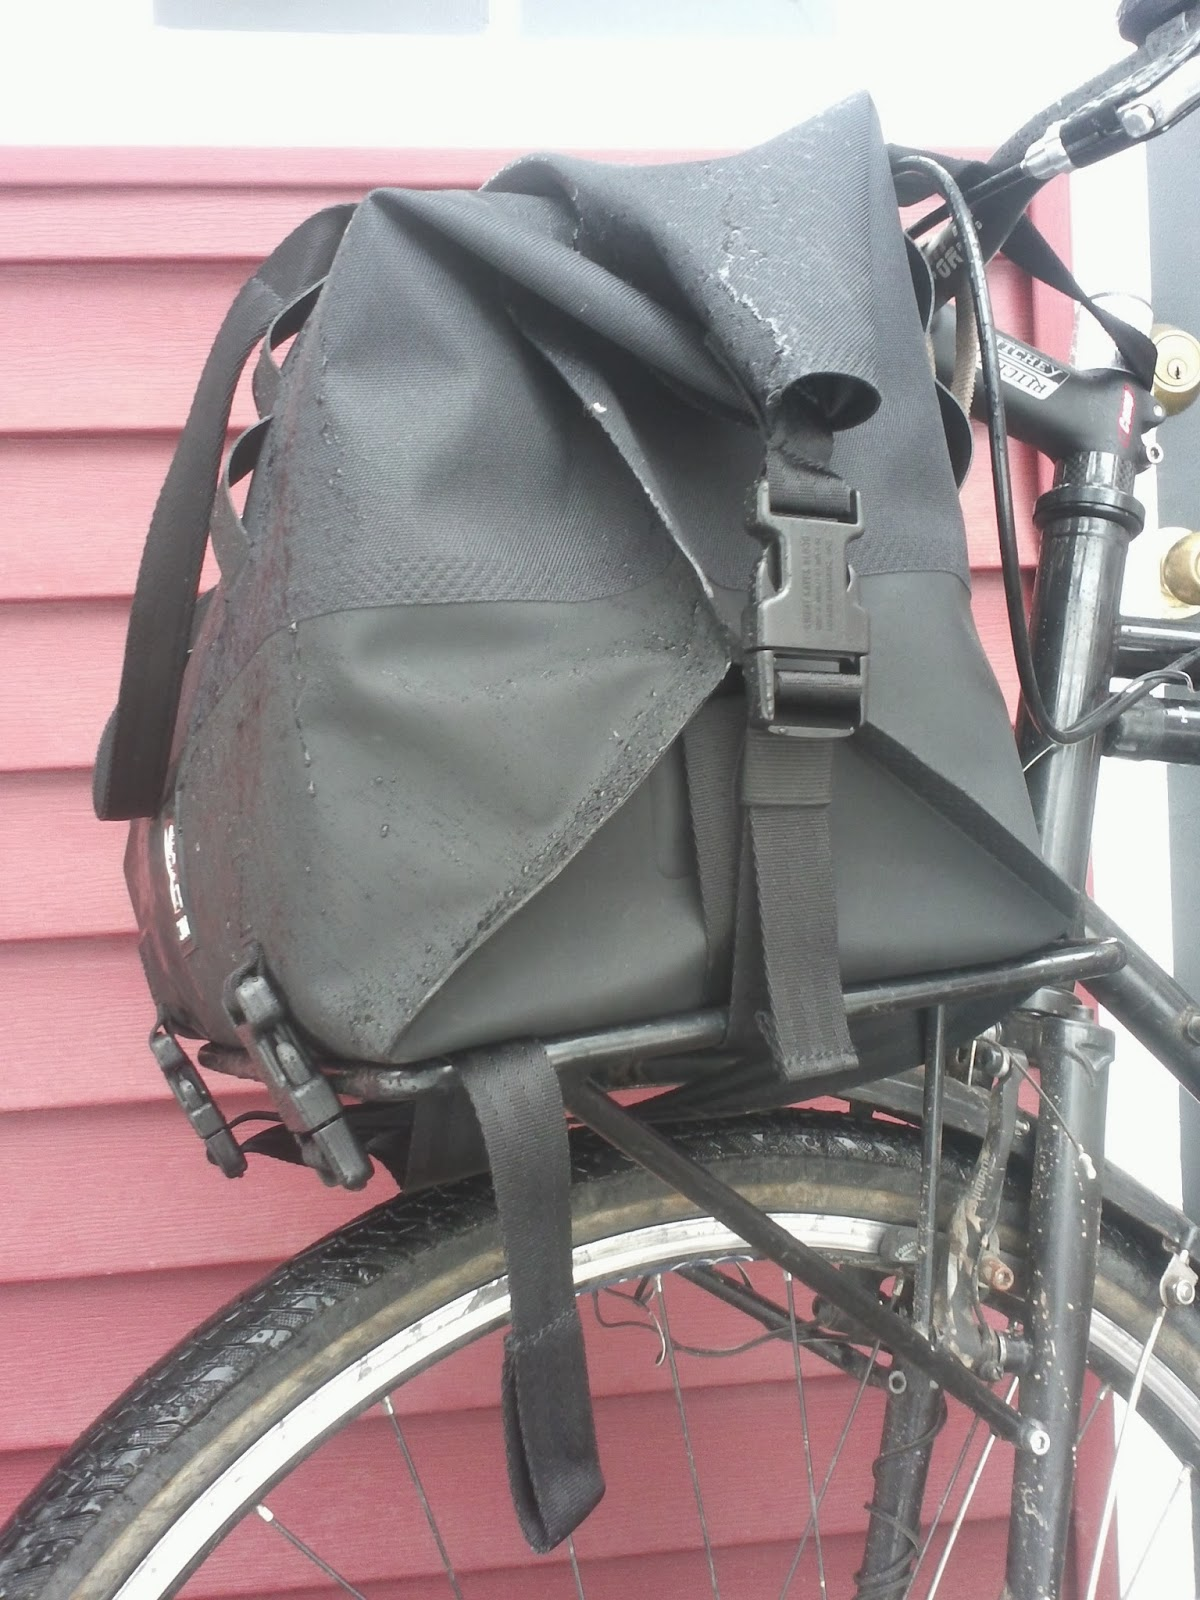 Review Initial Impressions Chrome Industries Front Rack Duffle